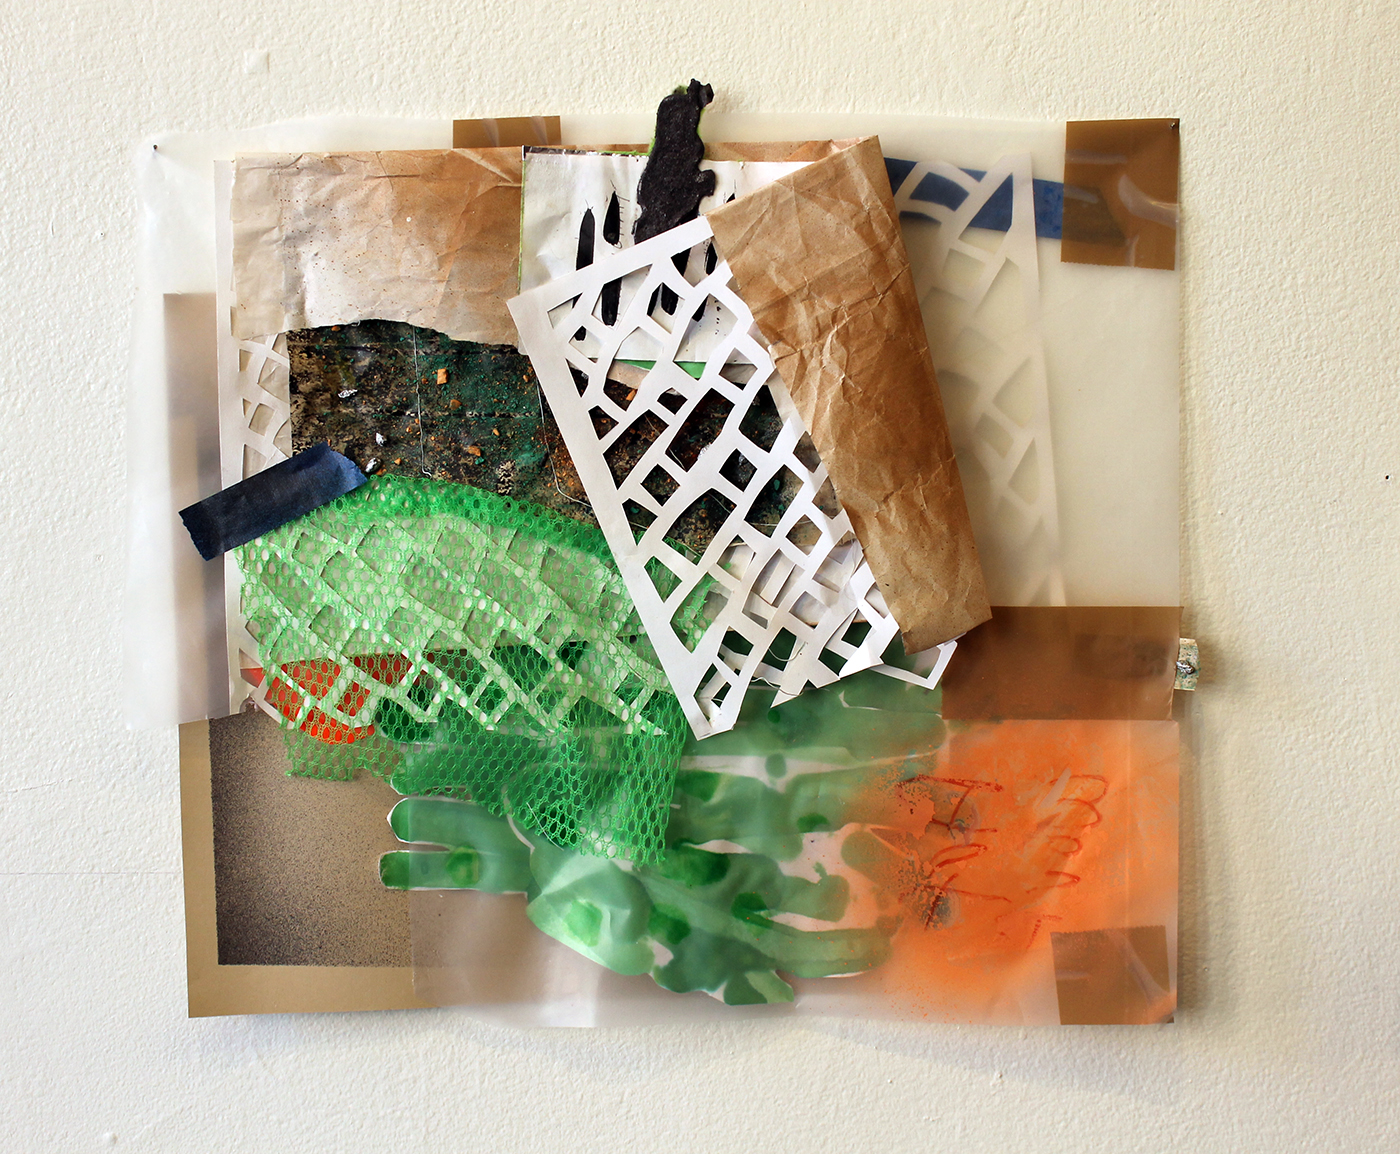 Go For Fences,  Harriet Hoover & Amy S. Hoppe, ink, acrylic spray paint, aluminum foil, plastic, and paper